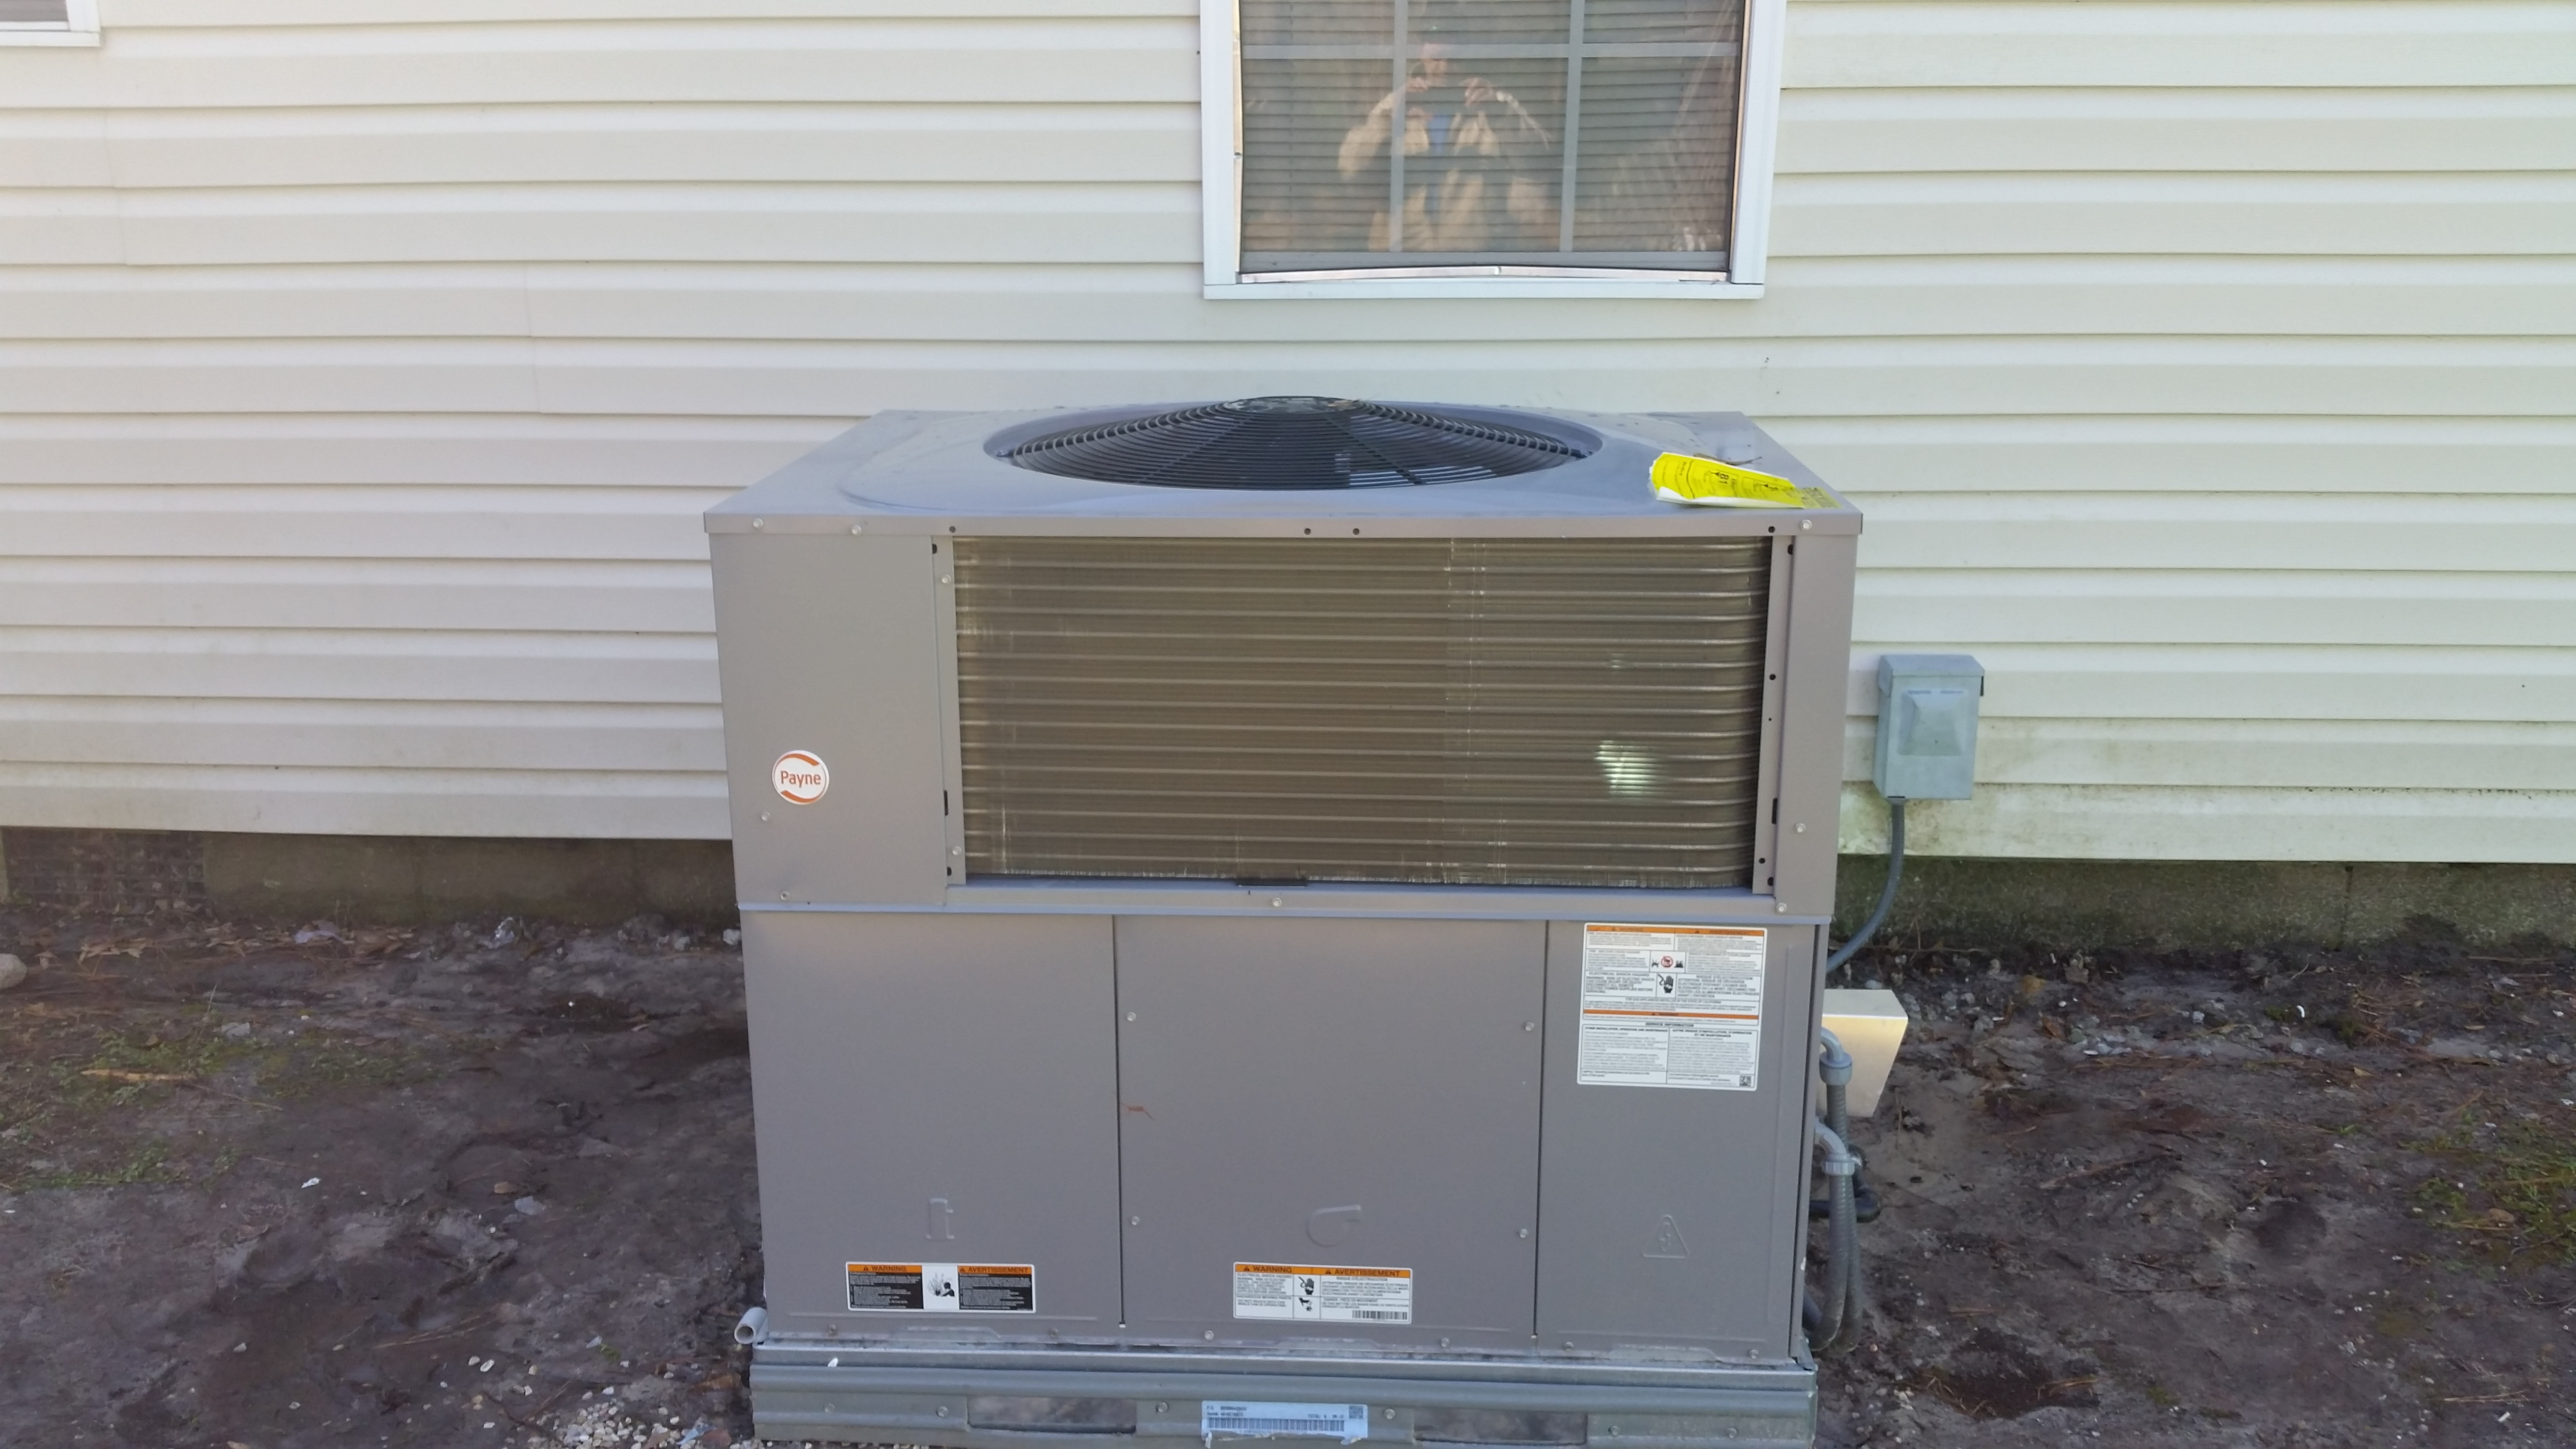 #526279 PM Heating & Air Conditioning LLC In Kinston NC (252  Brand New 9641 Homeowners Insurance Air Conditioning images with 5312x2988 px on helpvideos.info - Air Conditioners, Air Coolers and more